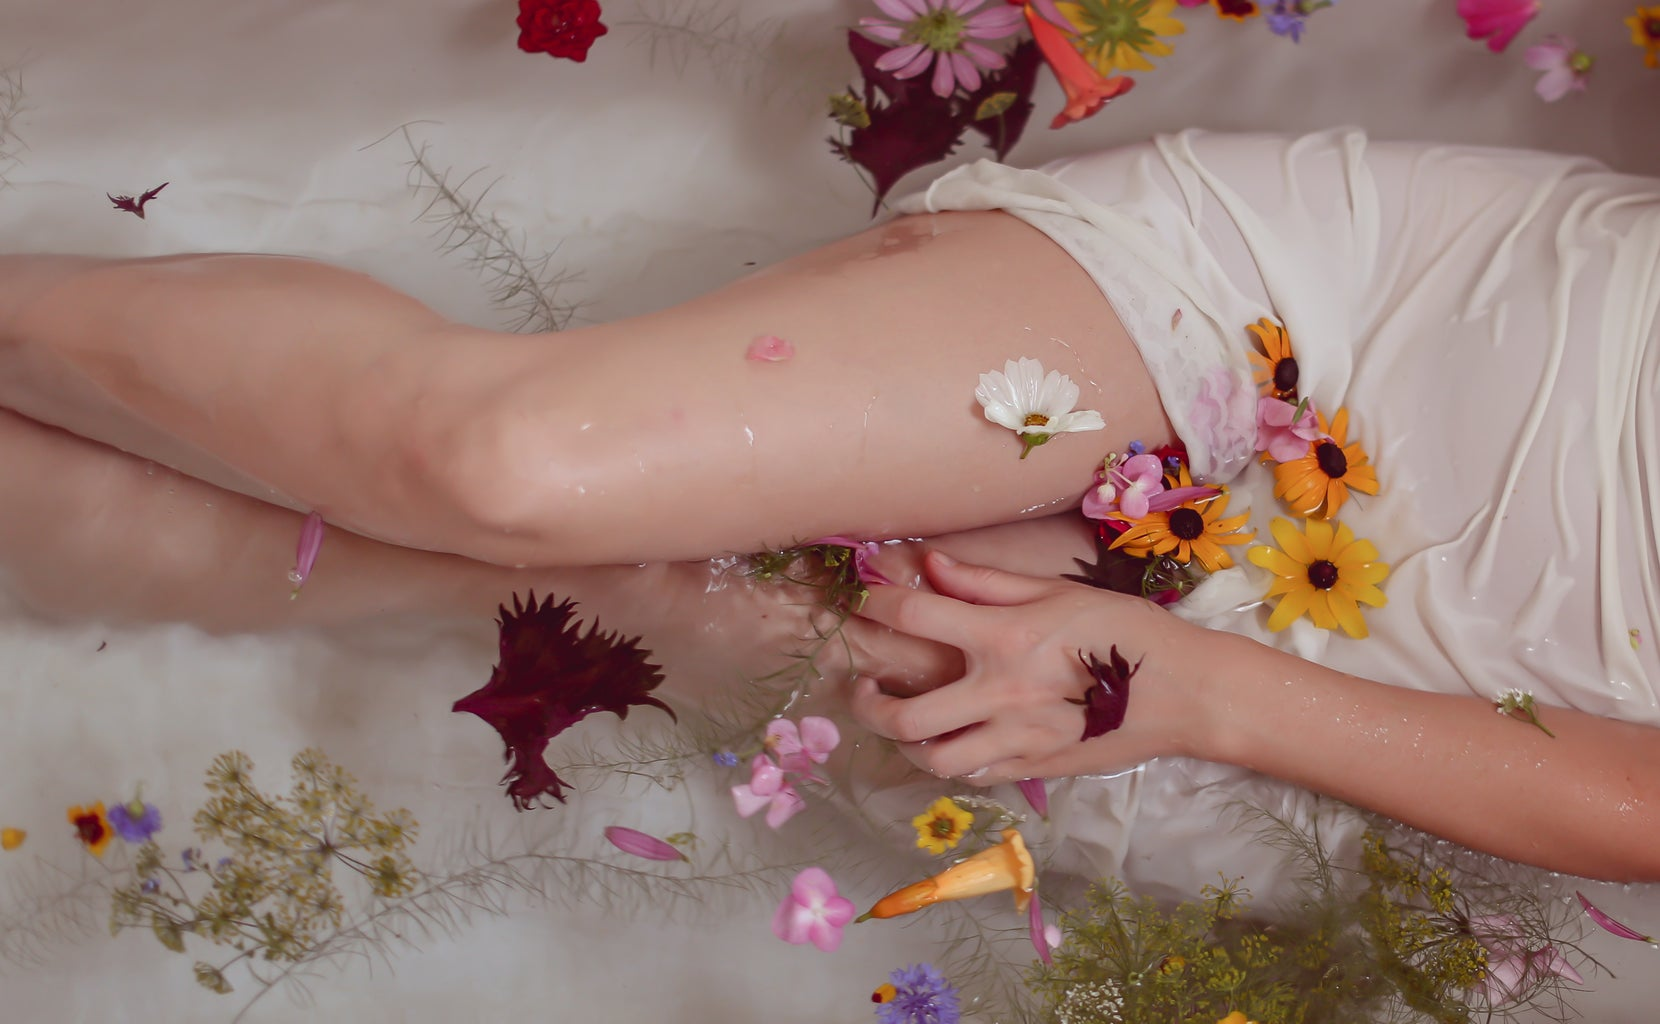 Woman in bath covered in flowers